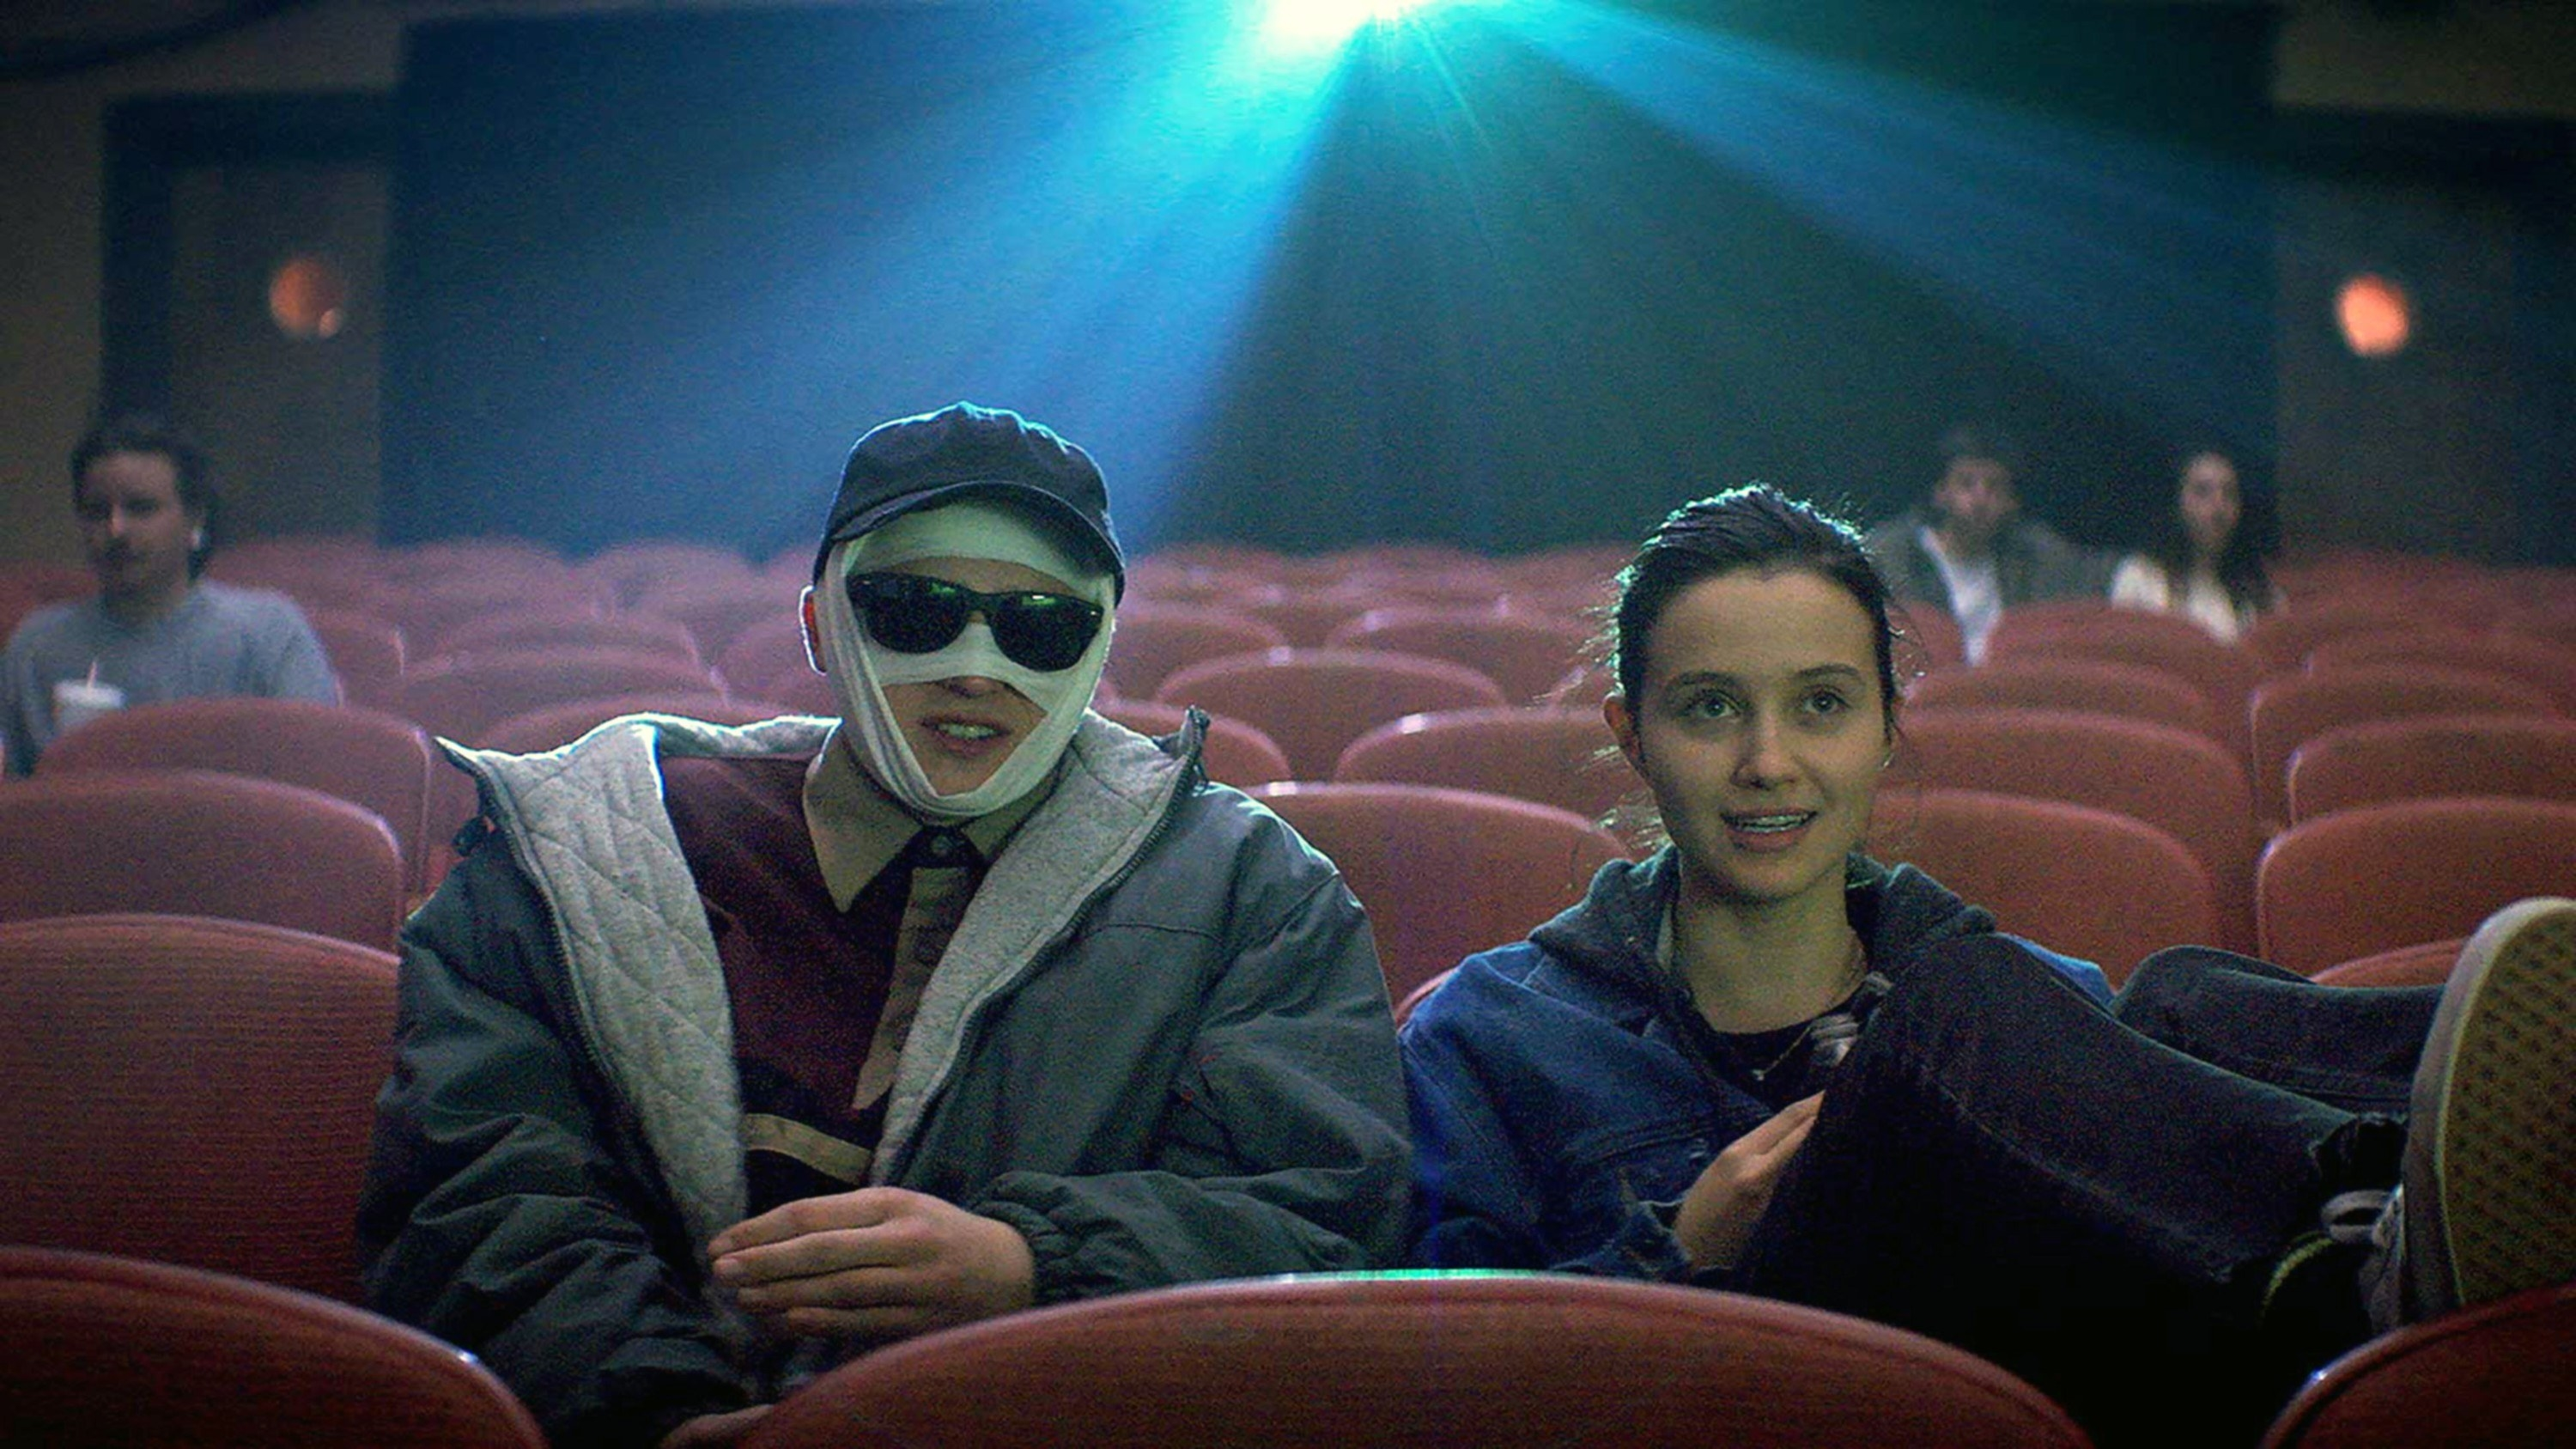 A man with bandages all over his face at the movies with a girl sitting next to him.